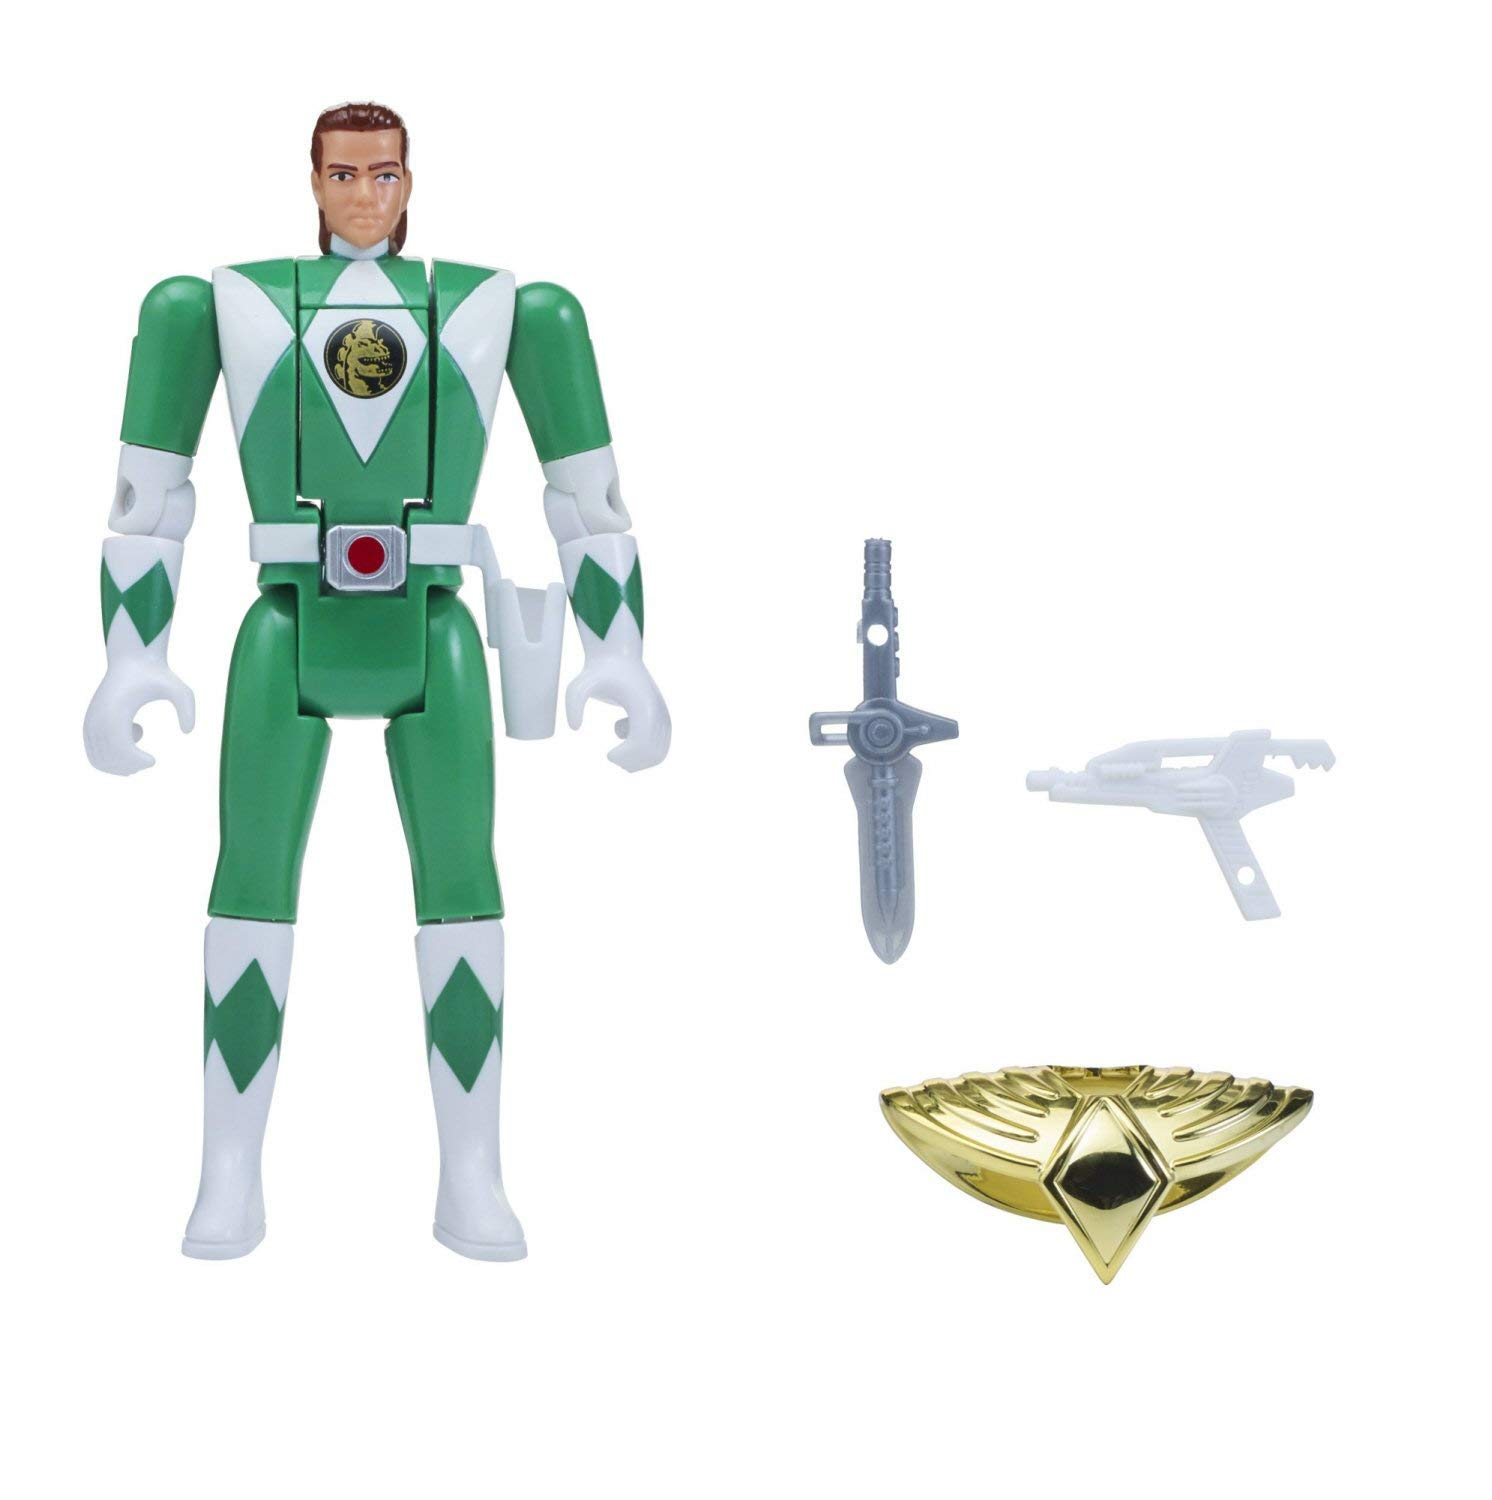 Power Rangers Auto Mighty Morphin Action Figure, Tommy Morphin Action Figure